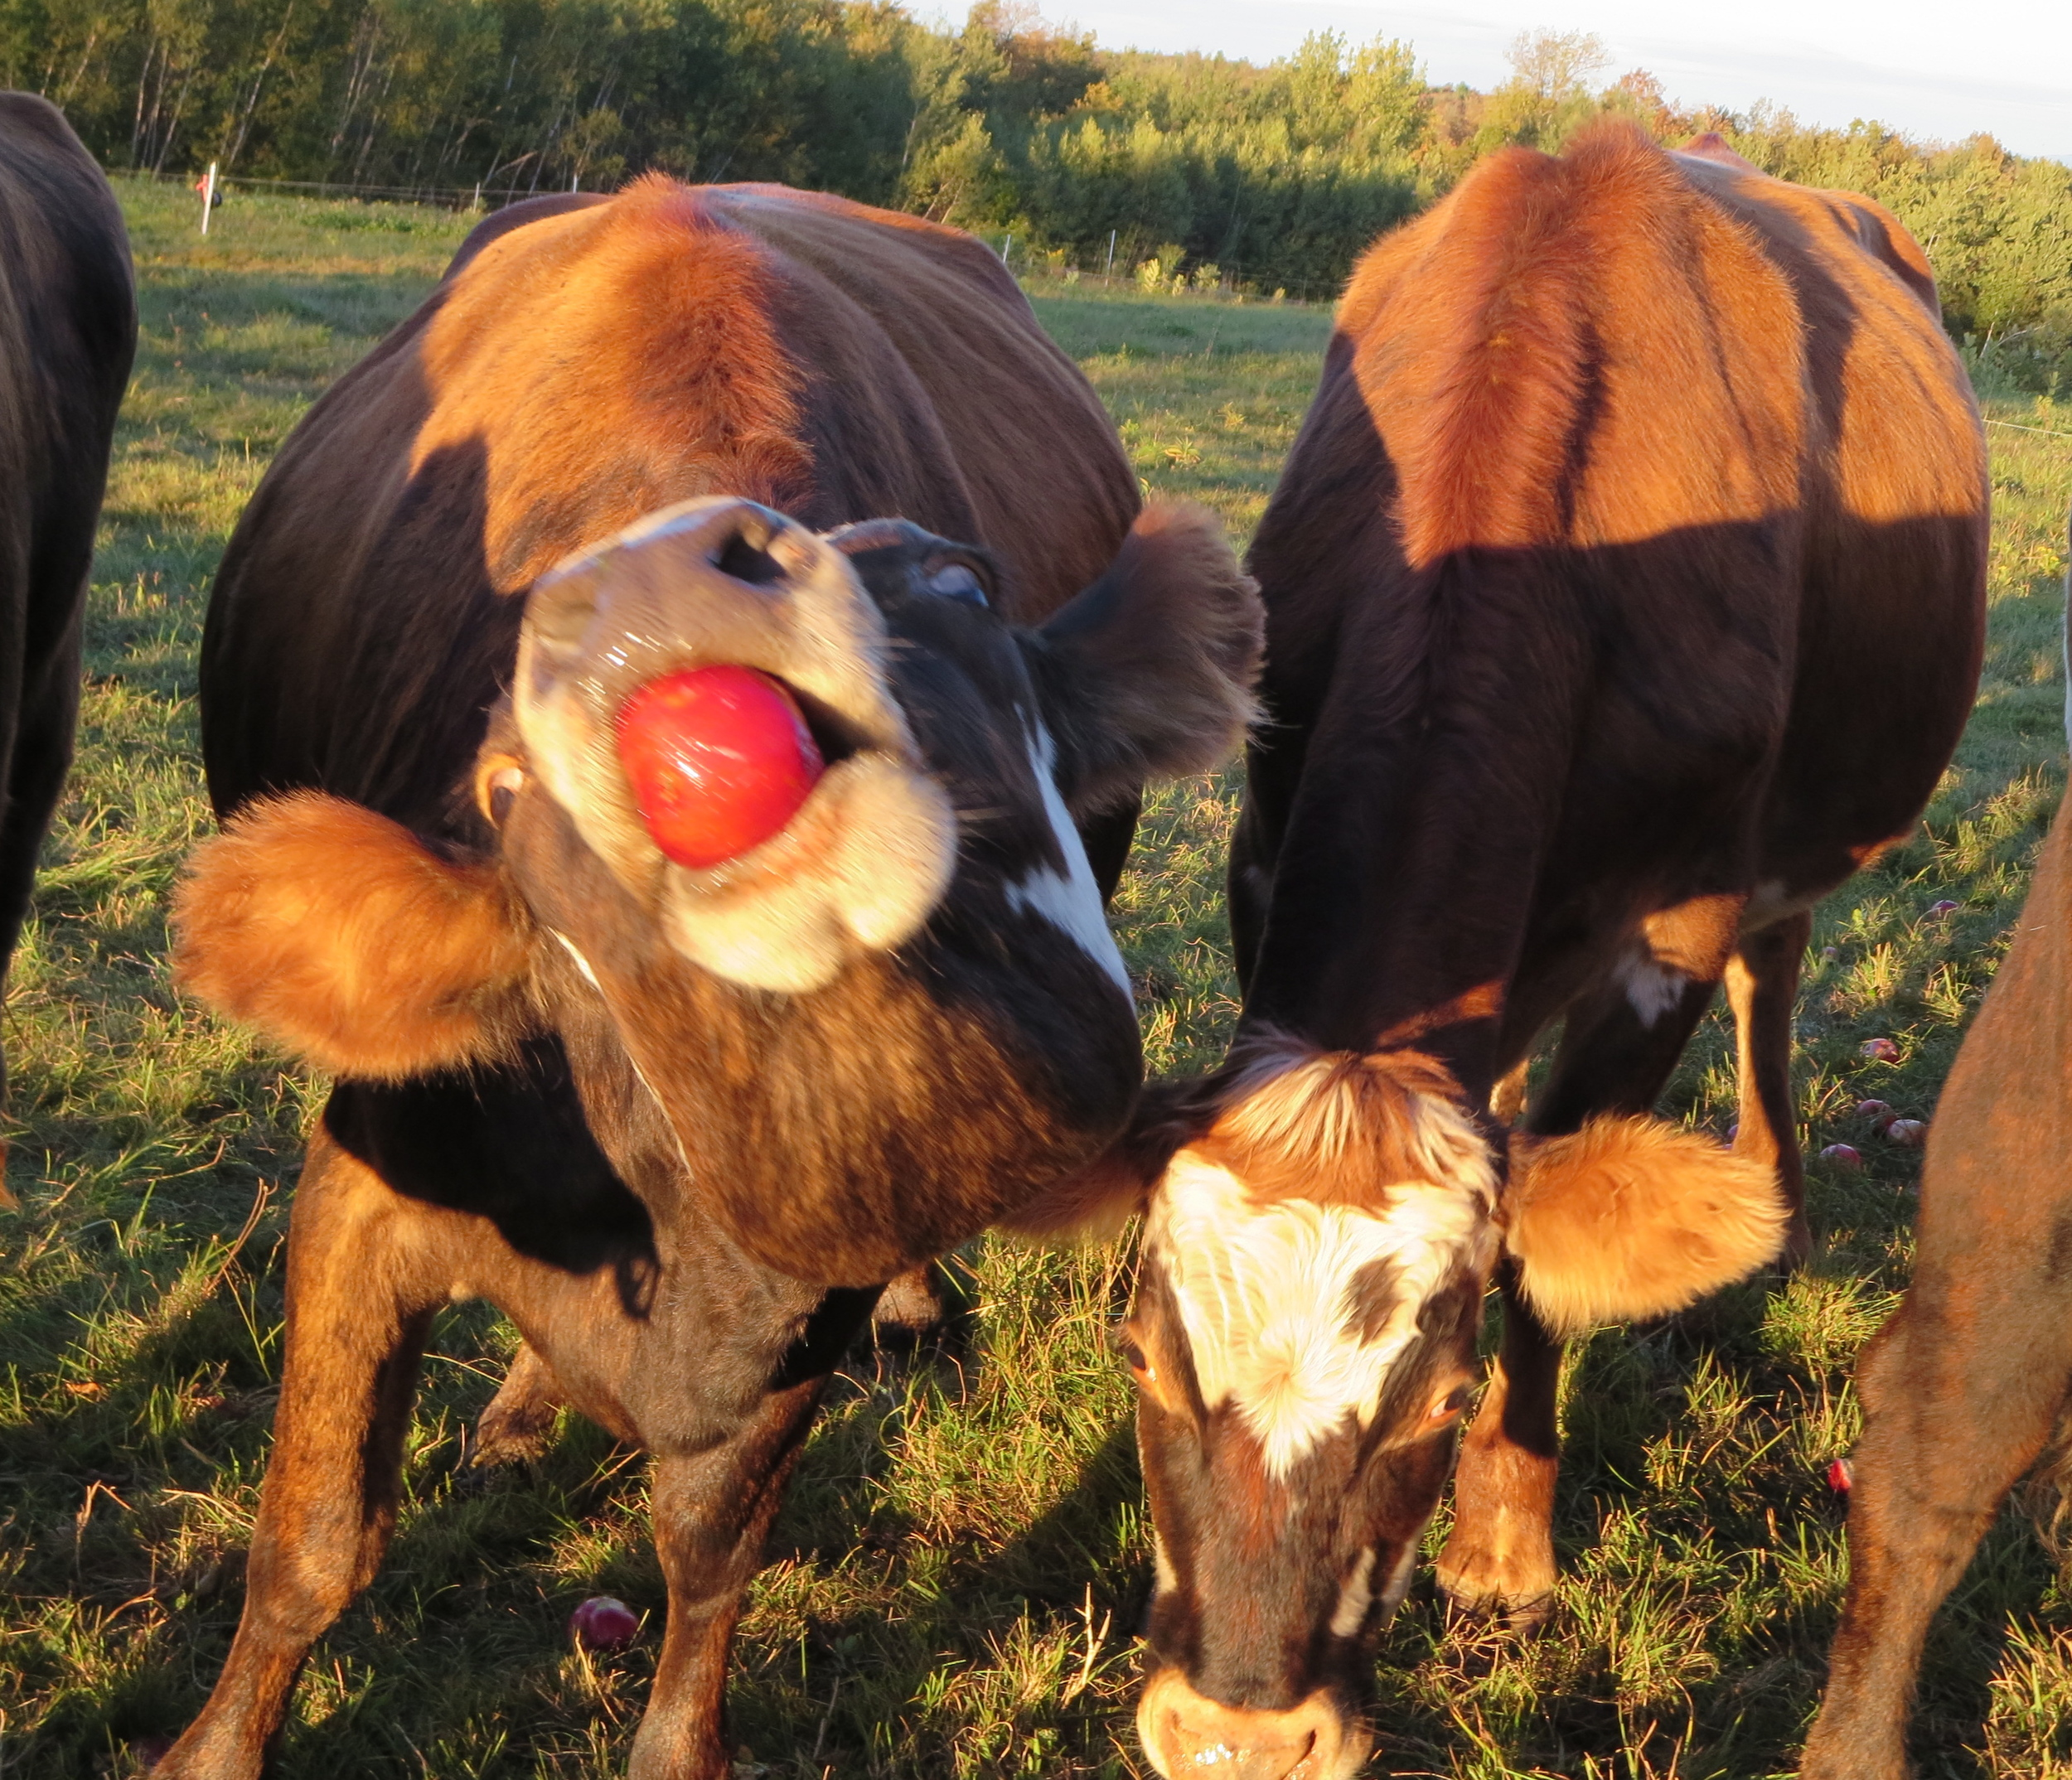 Sidehill Cows love apples almost as much as they love fresh grass!